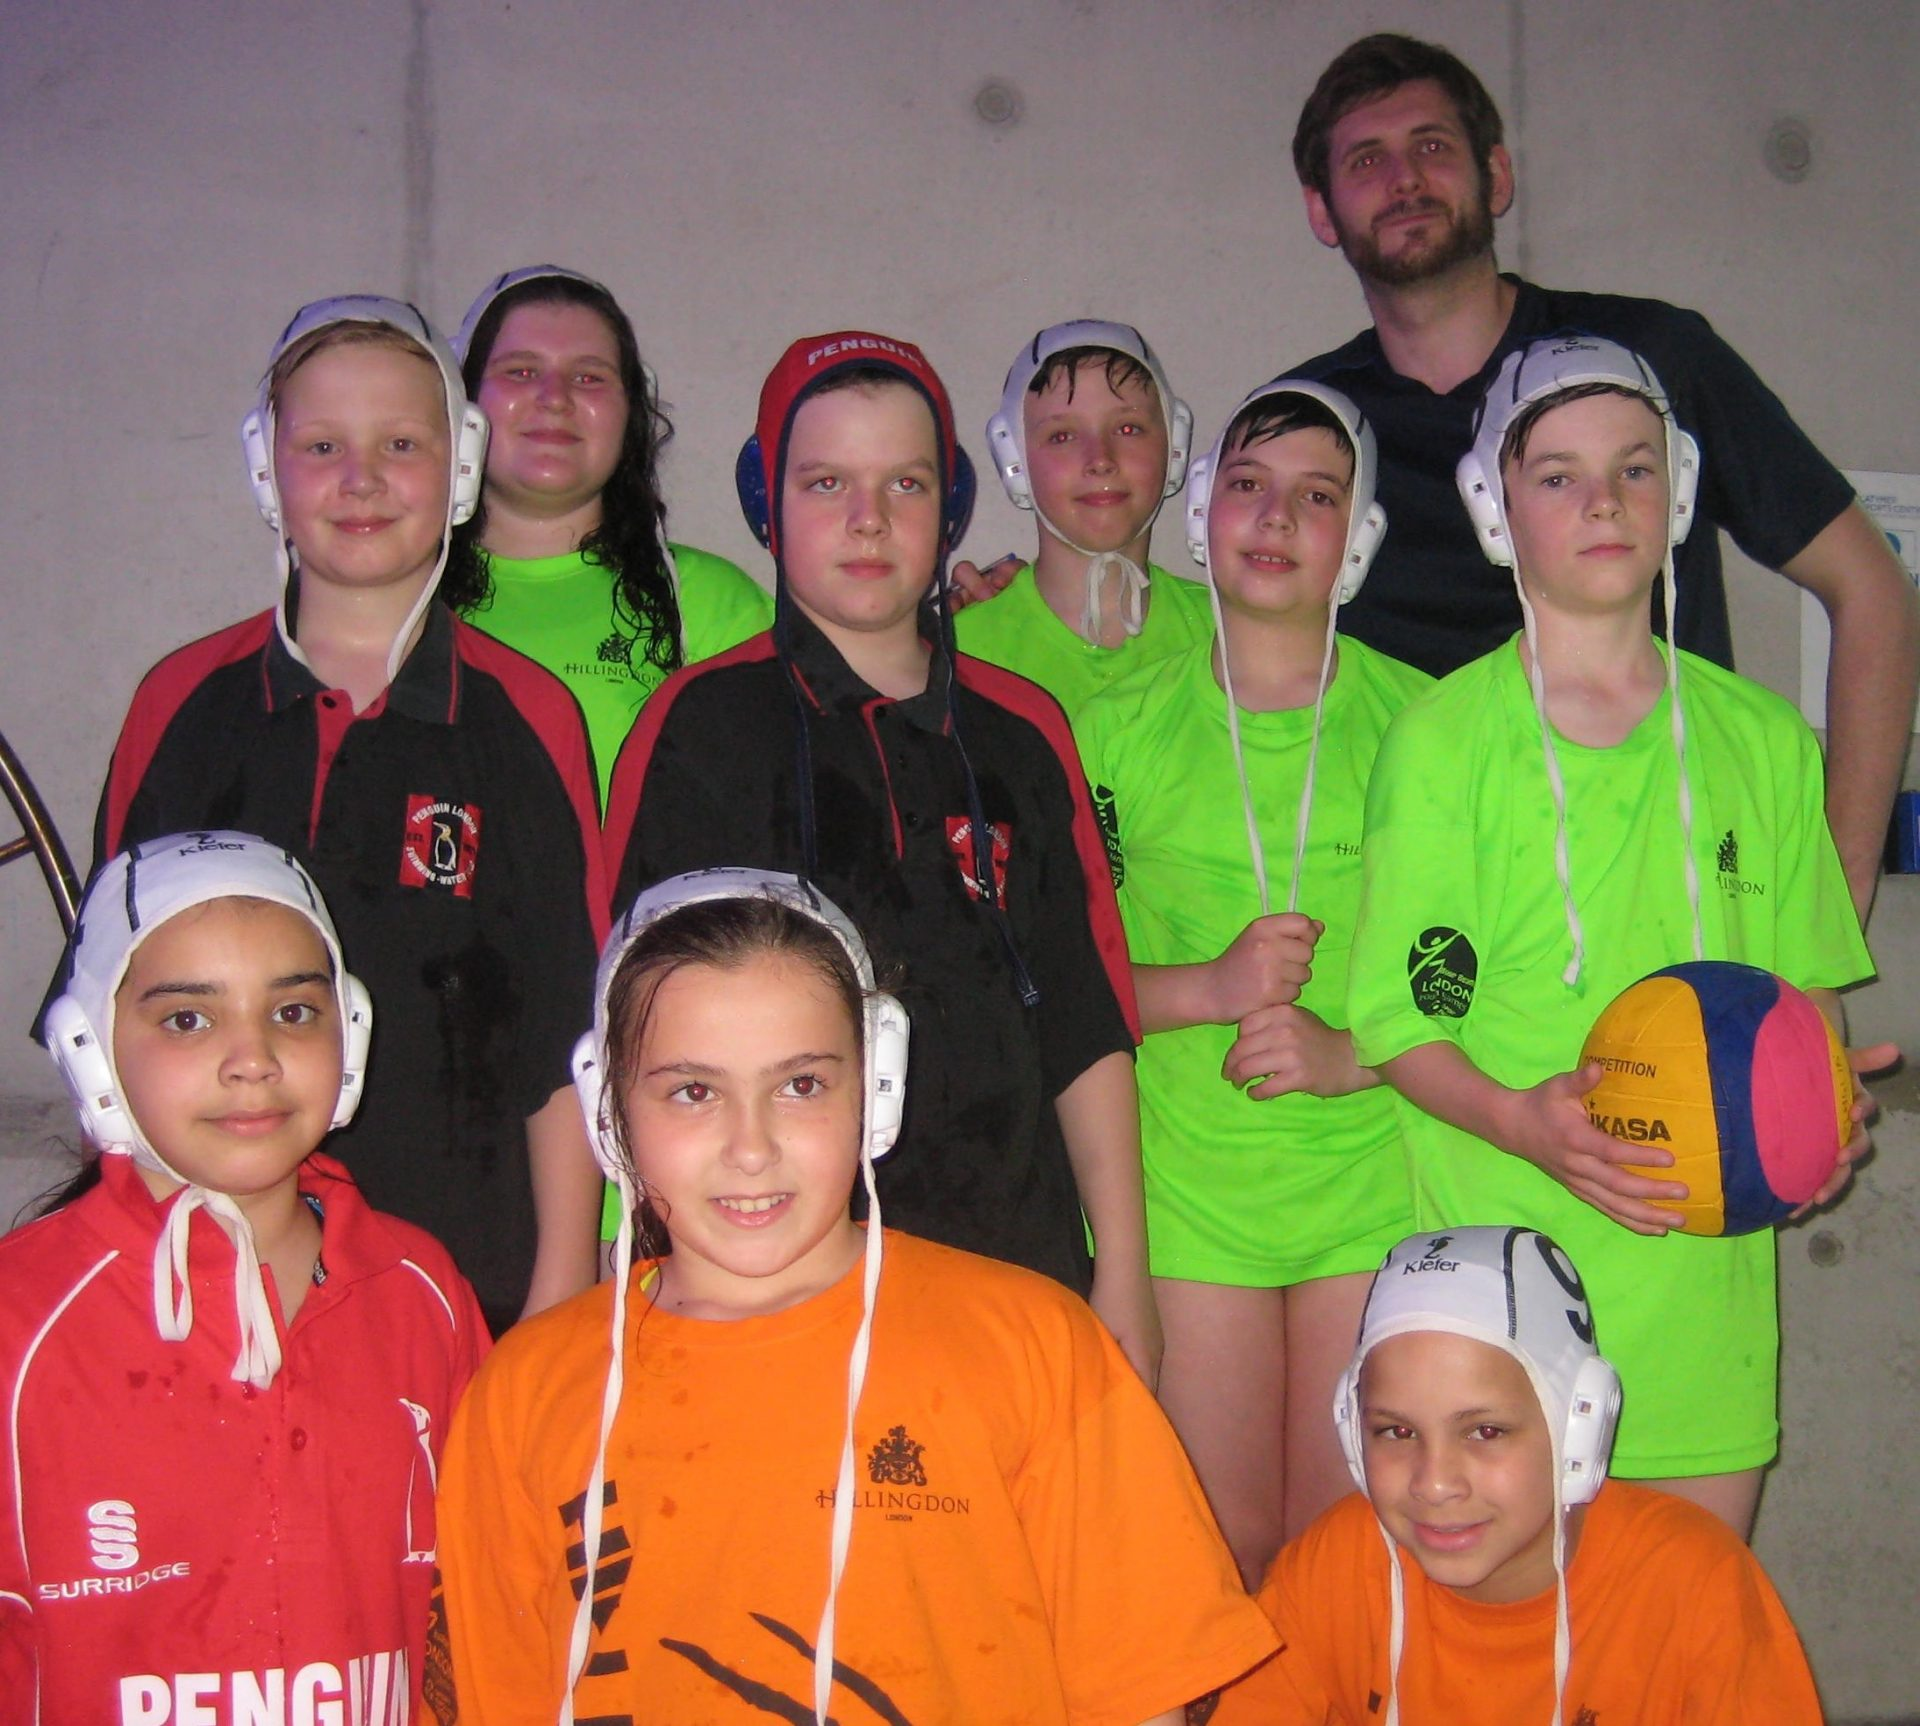 Hillingdon Penguin U13 team